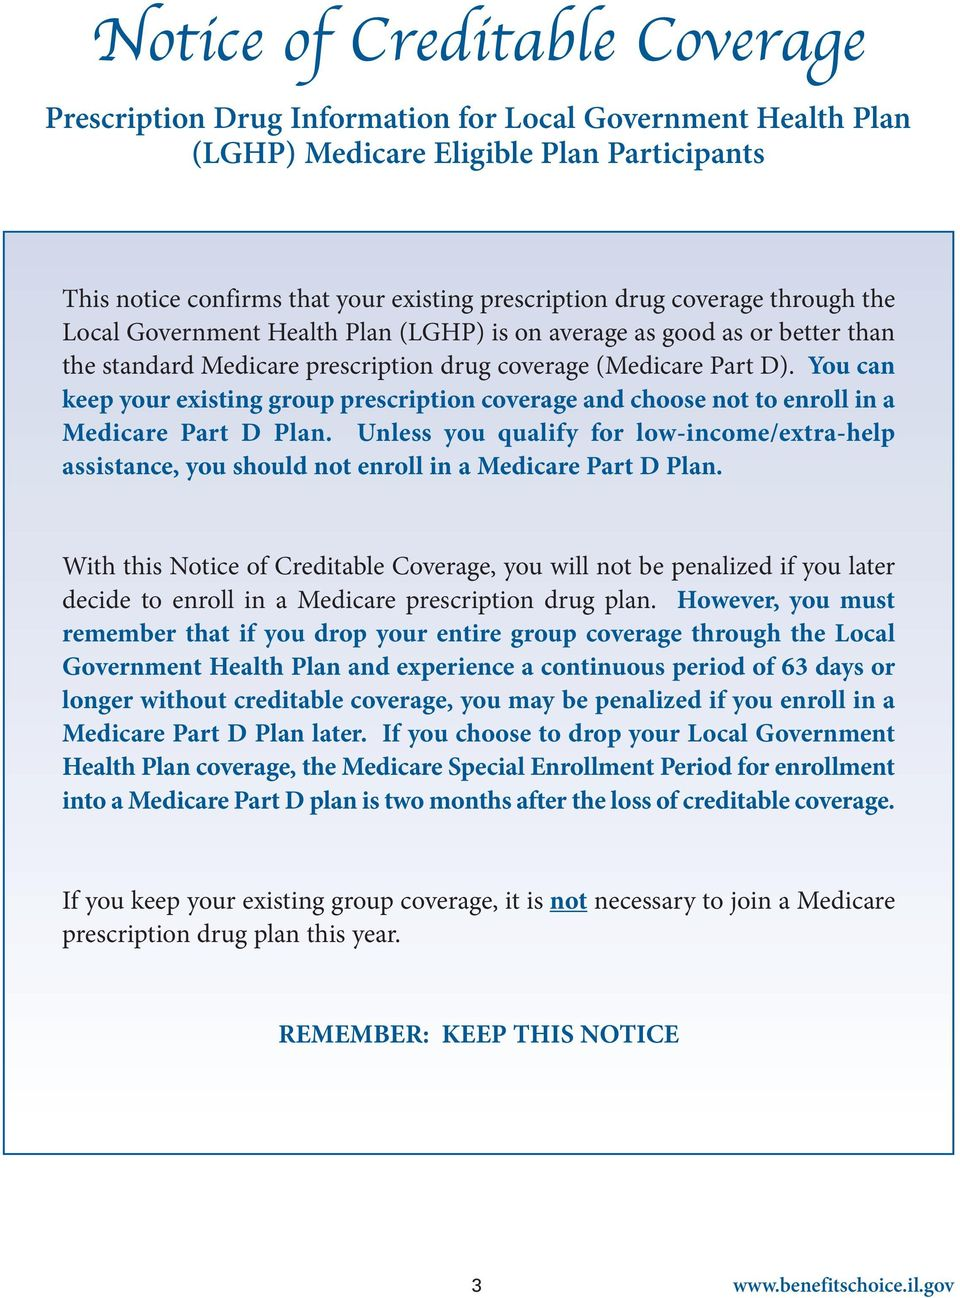 You can keep your existing group prescription coverage and choose not to enroll in a Medicare Part D Plan.